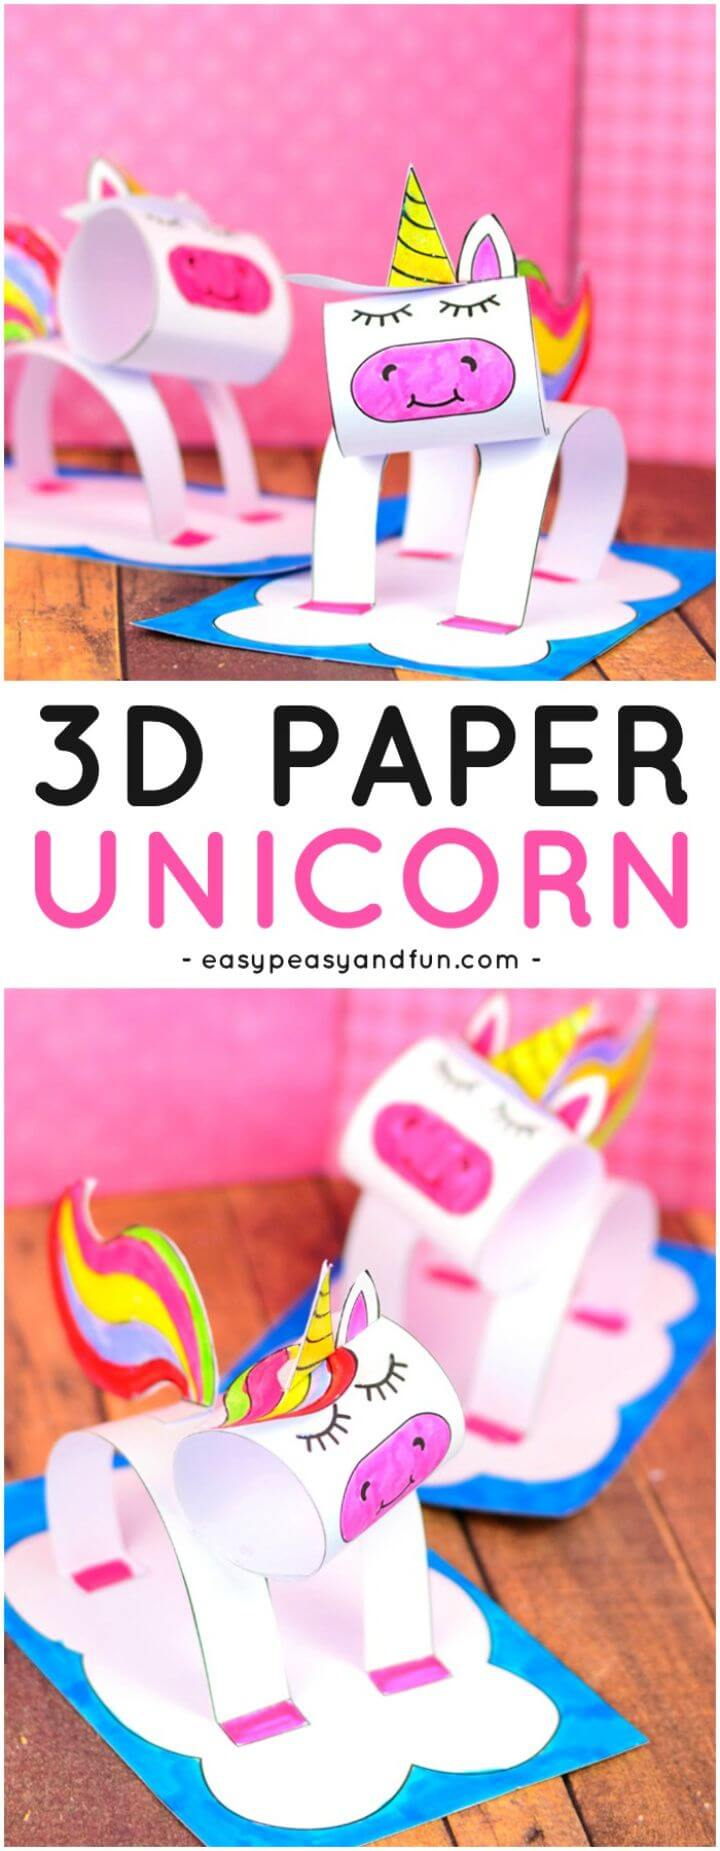 3D Construction Paper Unicorn Craft for Kids. A super fun paper craft idea for kids 1